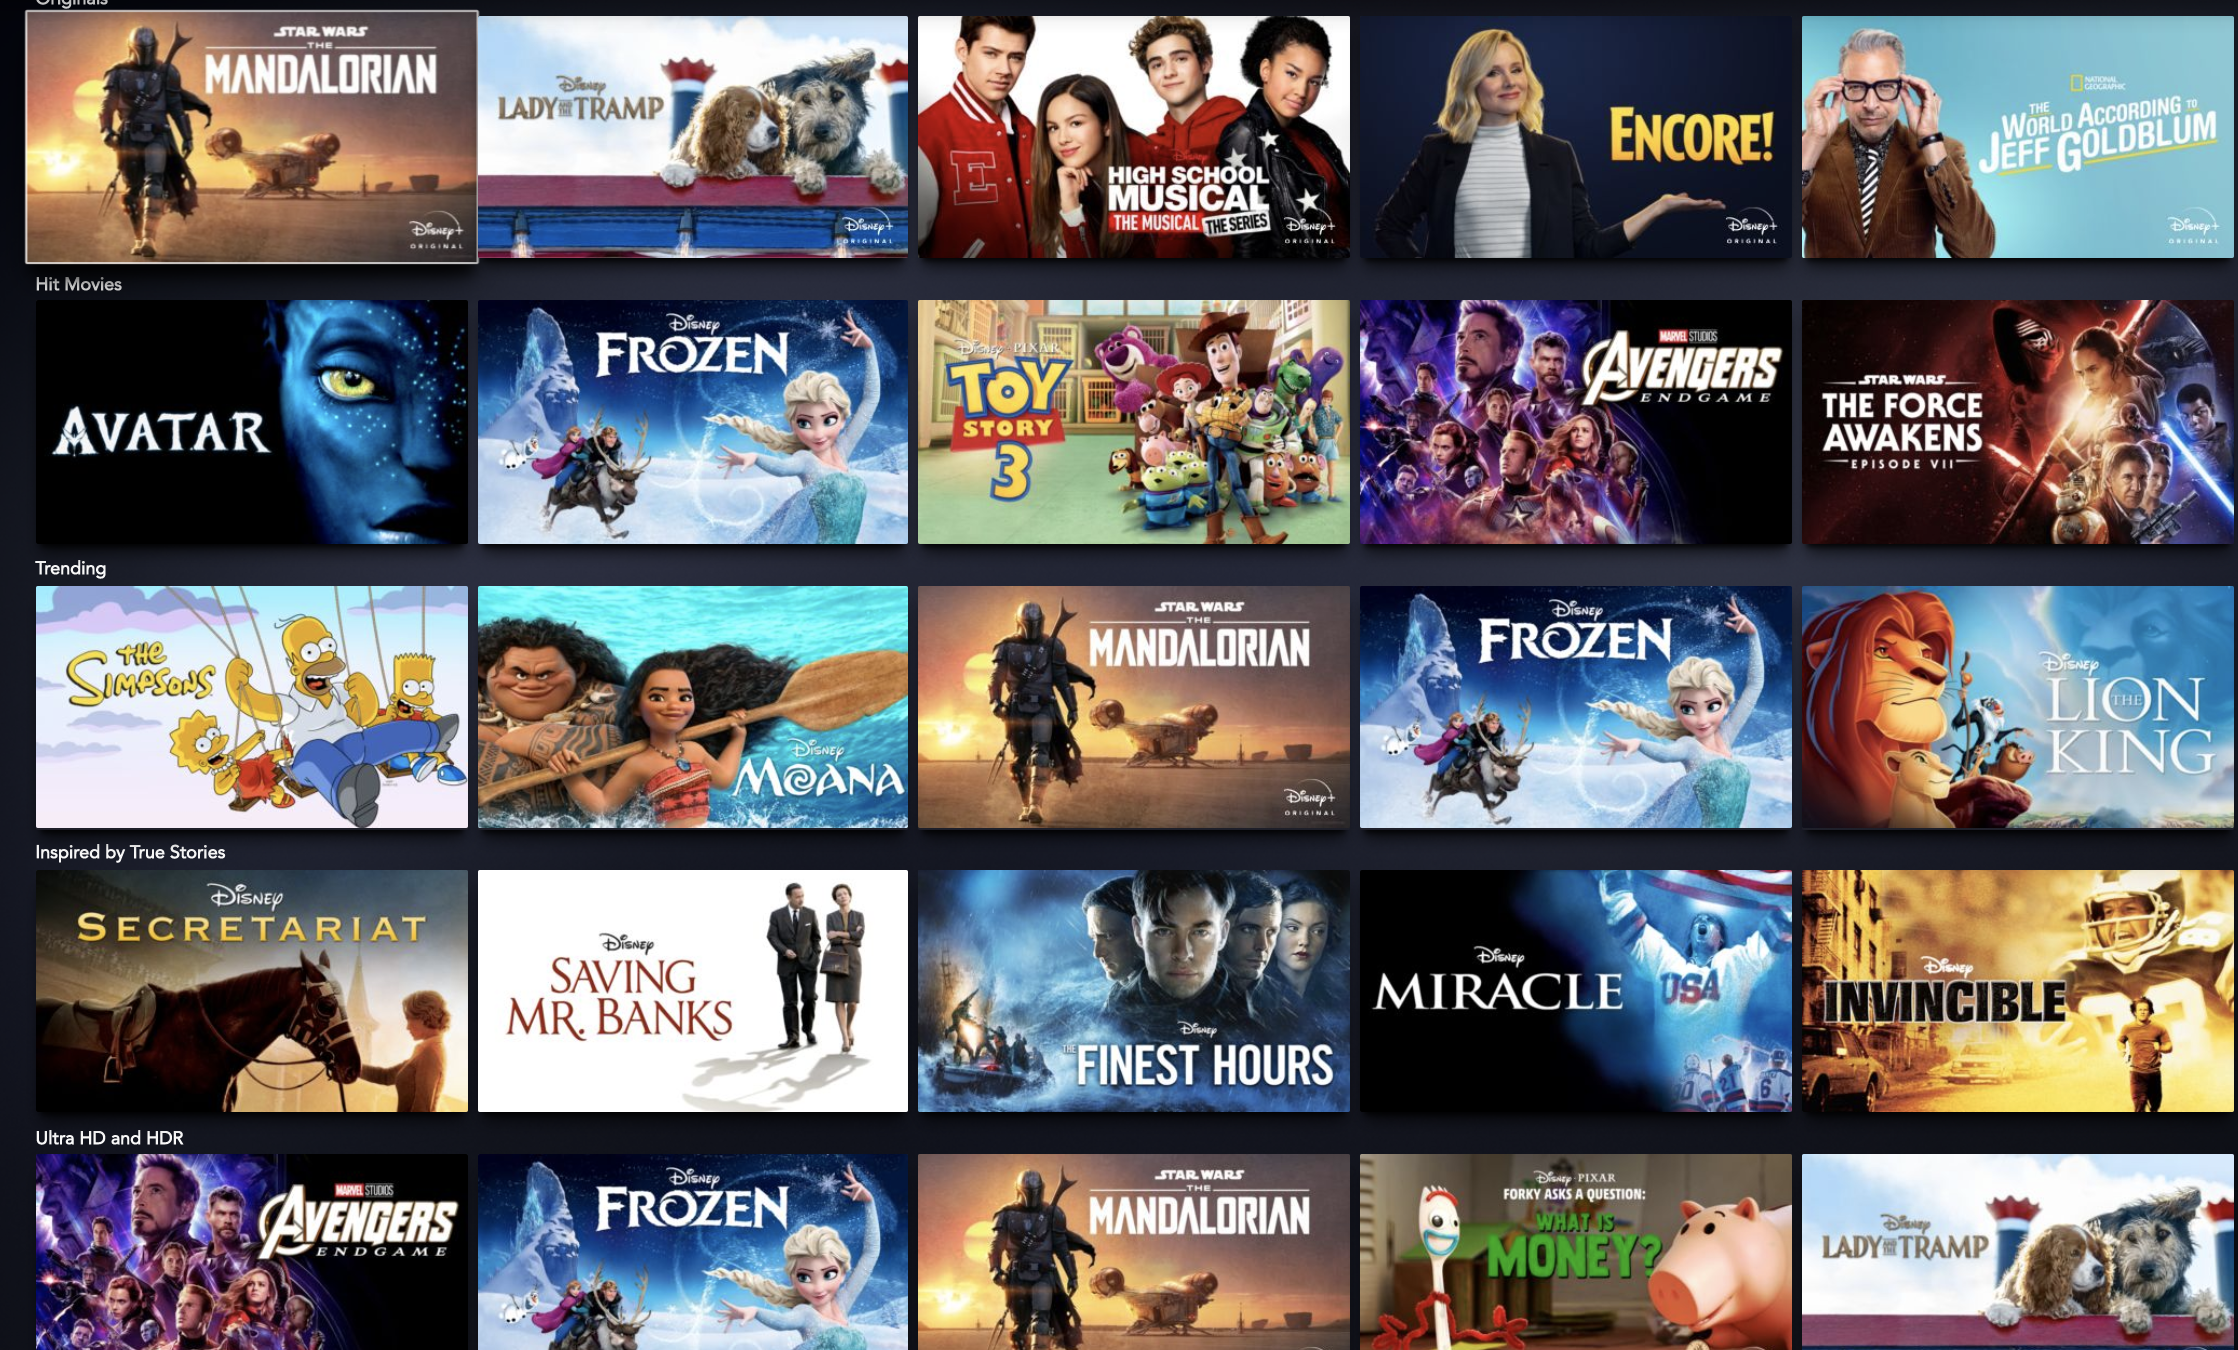 Films are quietly disappearing from Disney Plus